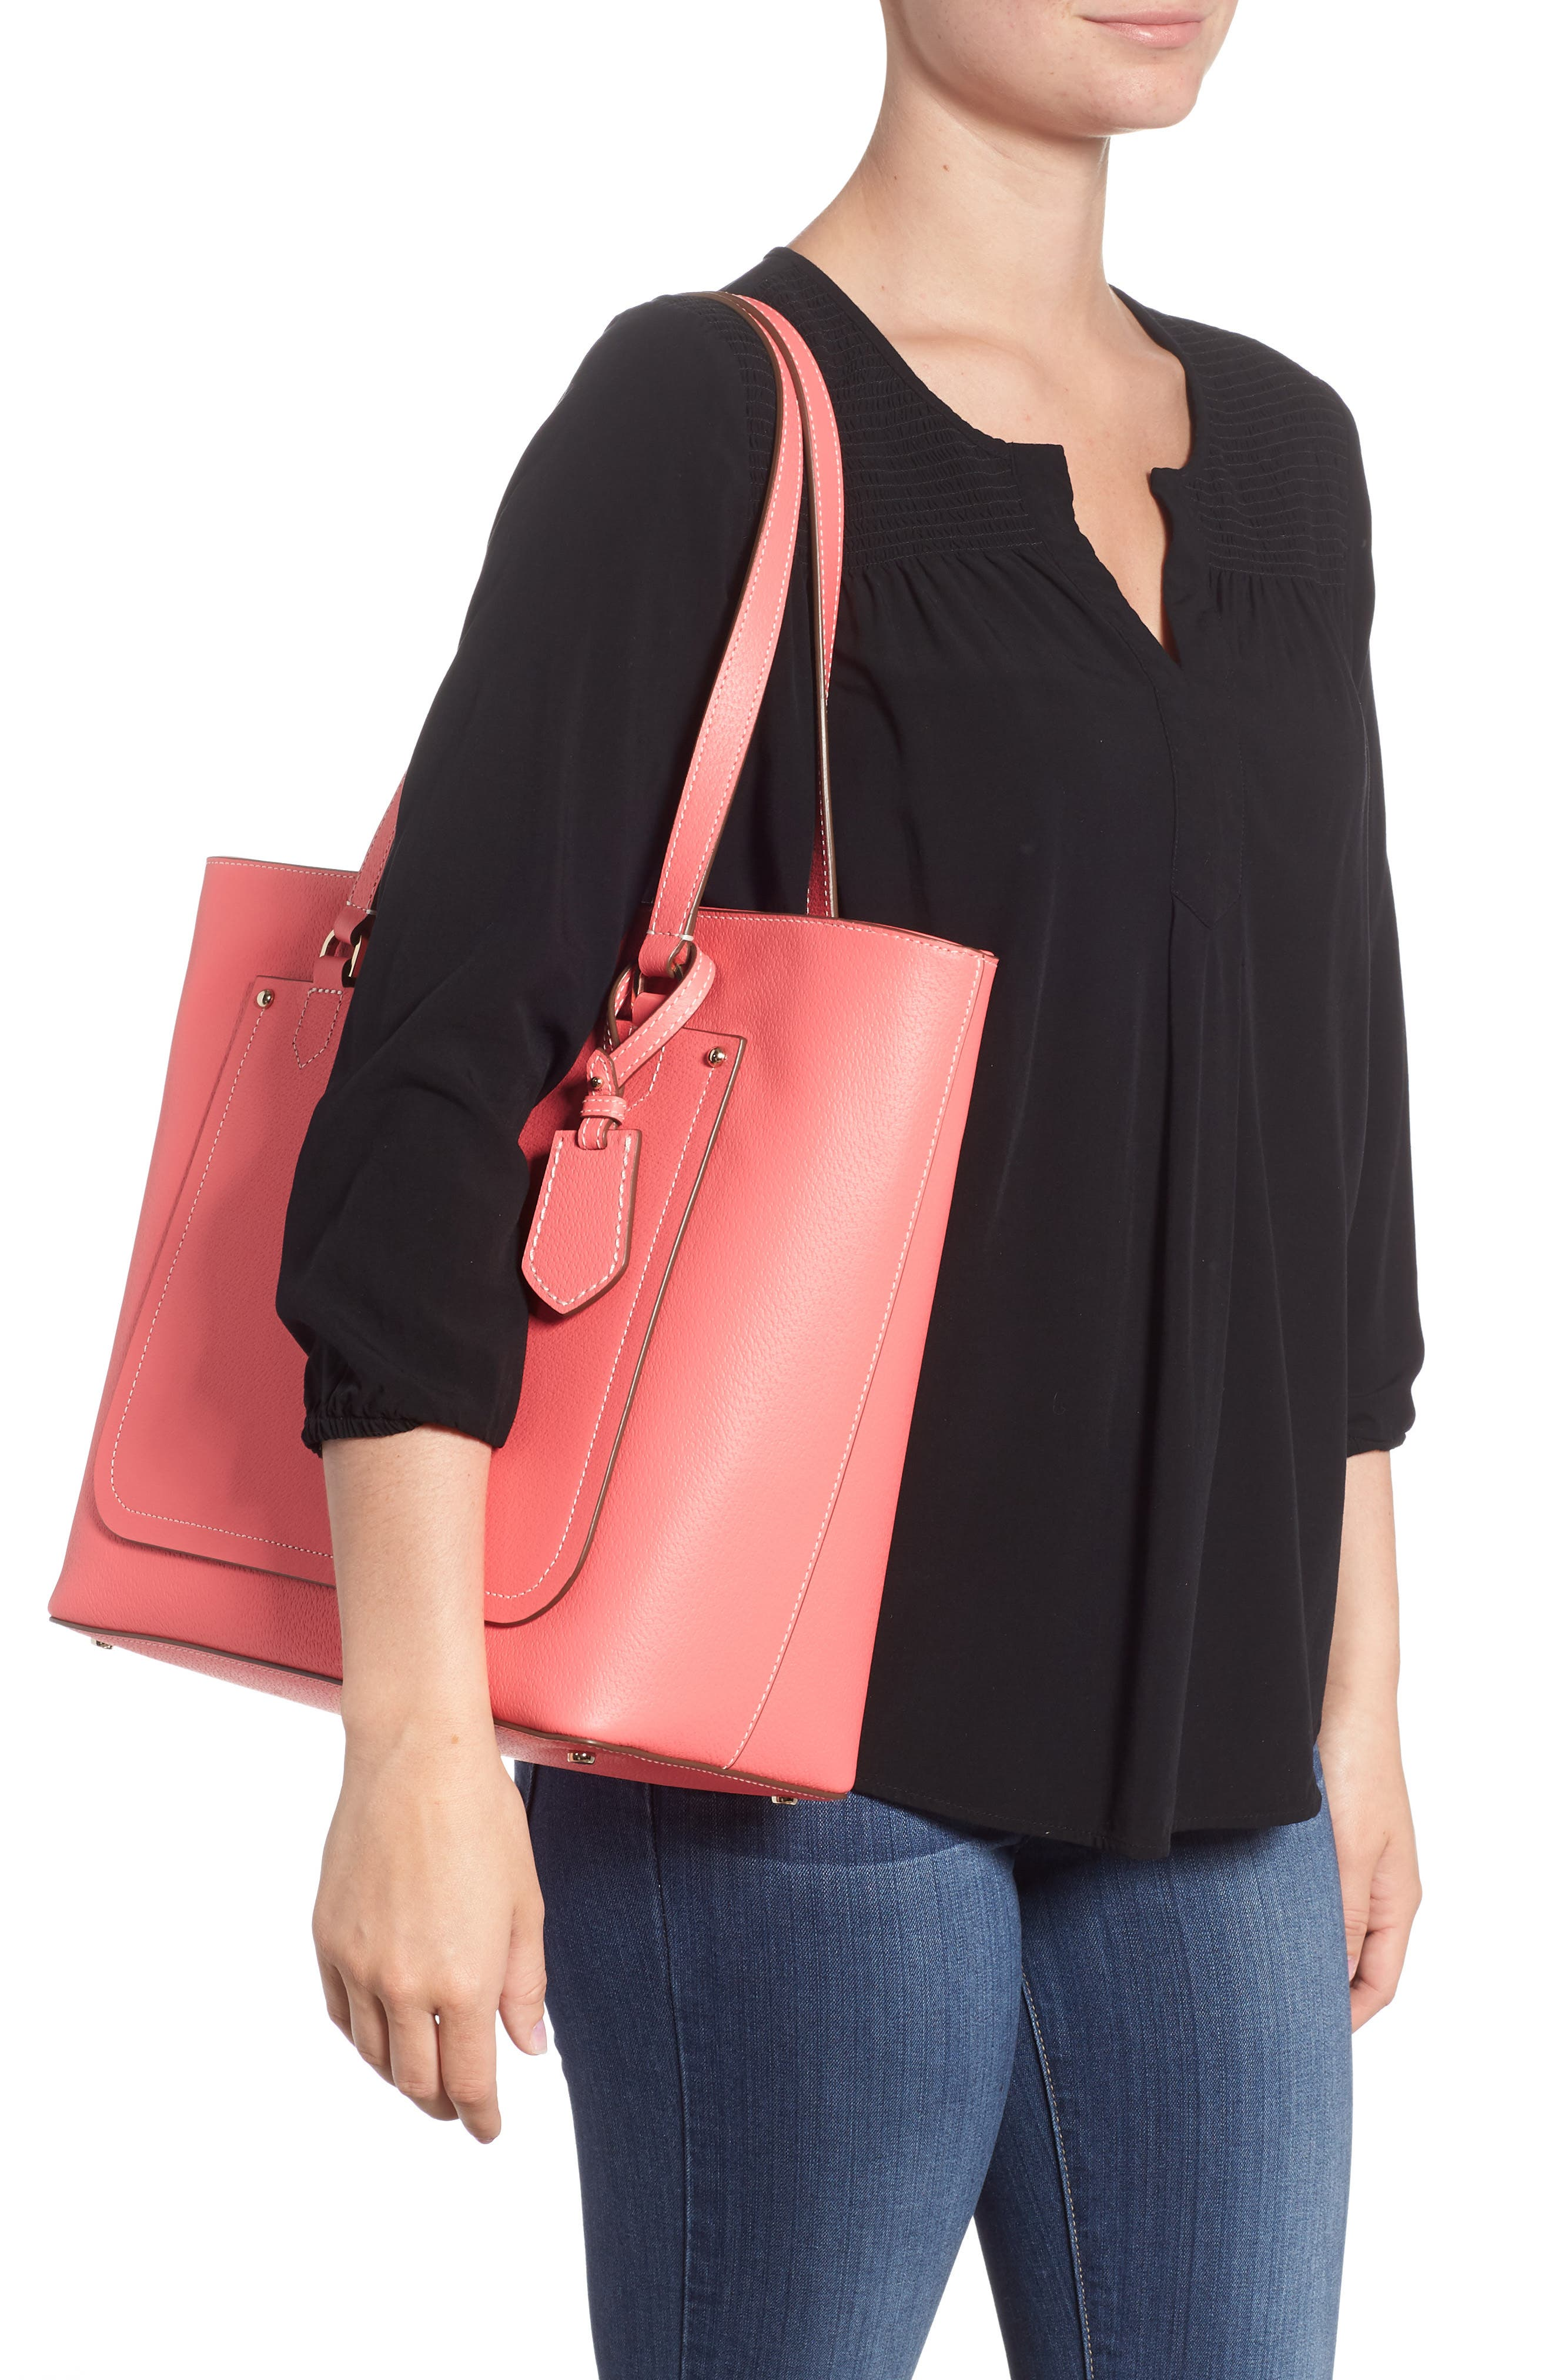 thompson street - kimberly leather tote,                             Alternate thumbnail 2, color,                             BRIGHT FLAMINGO